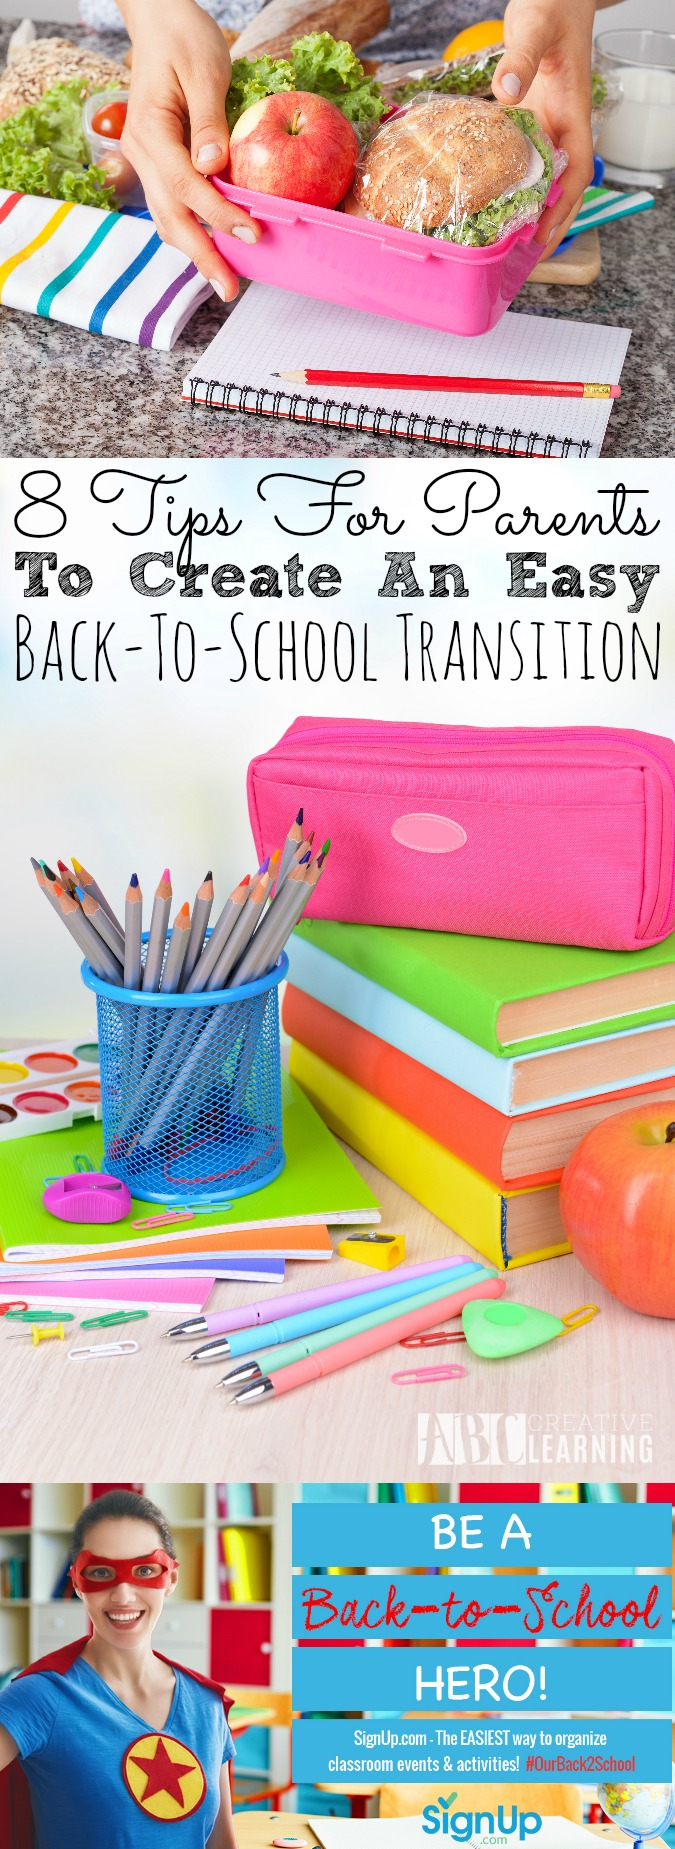 8 Tips For Parents to Create An Easy Back To School Transition - abccreativelearning.com